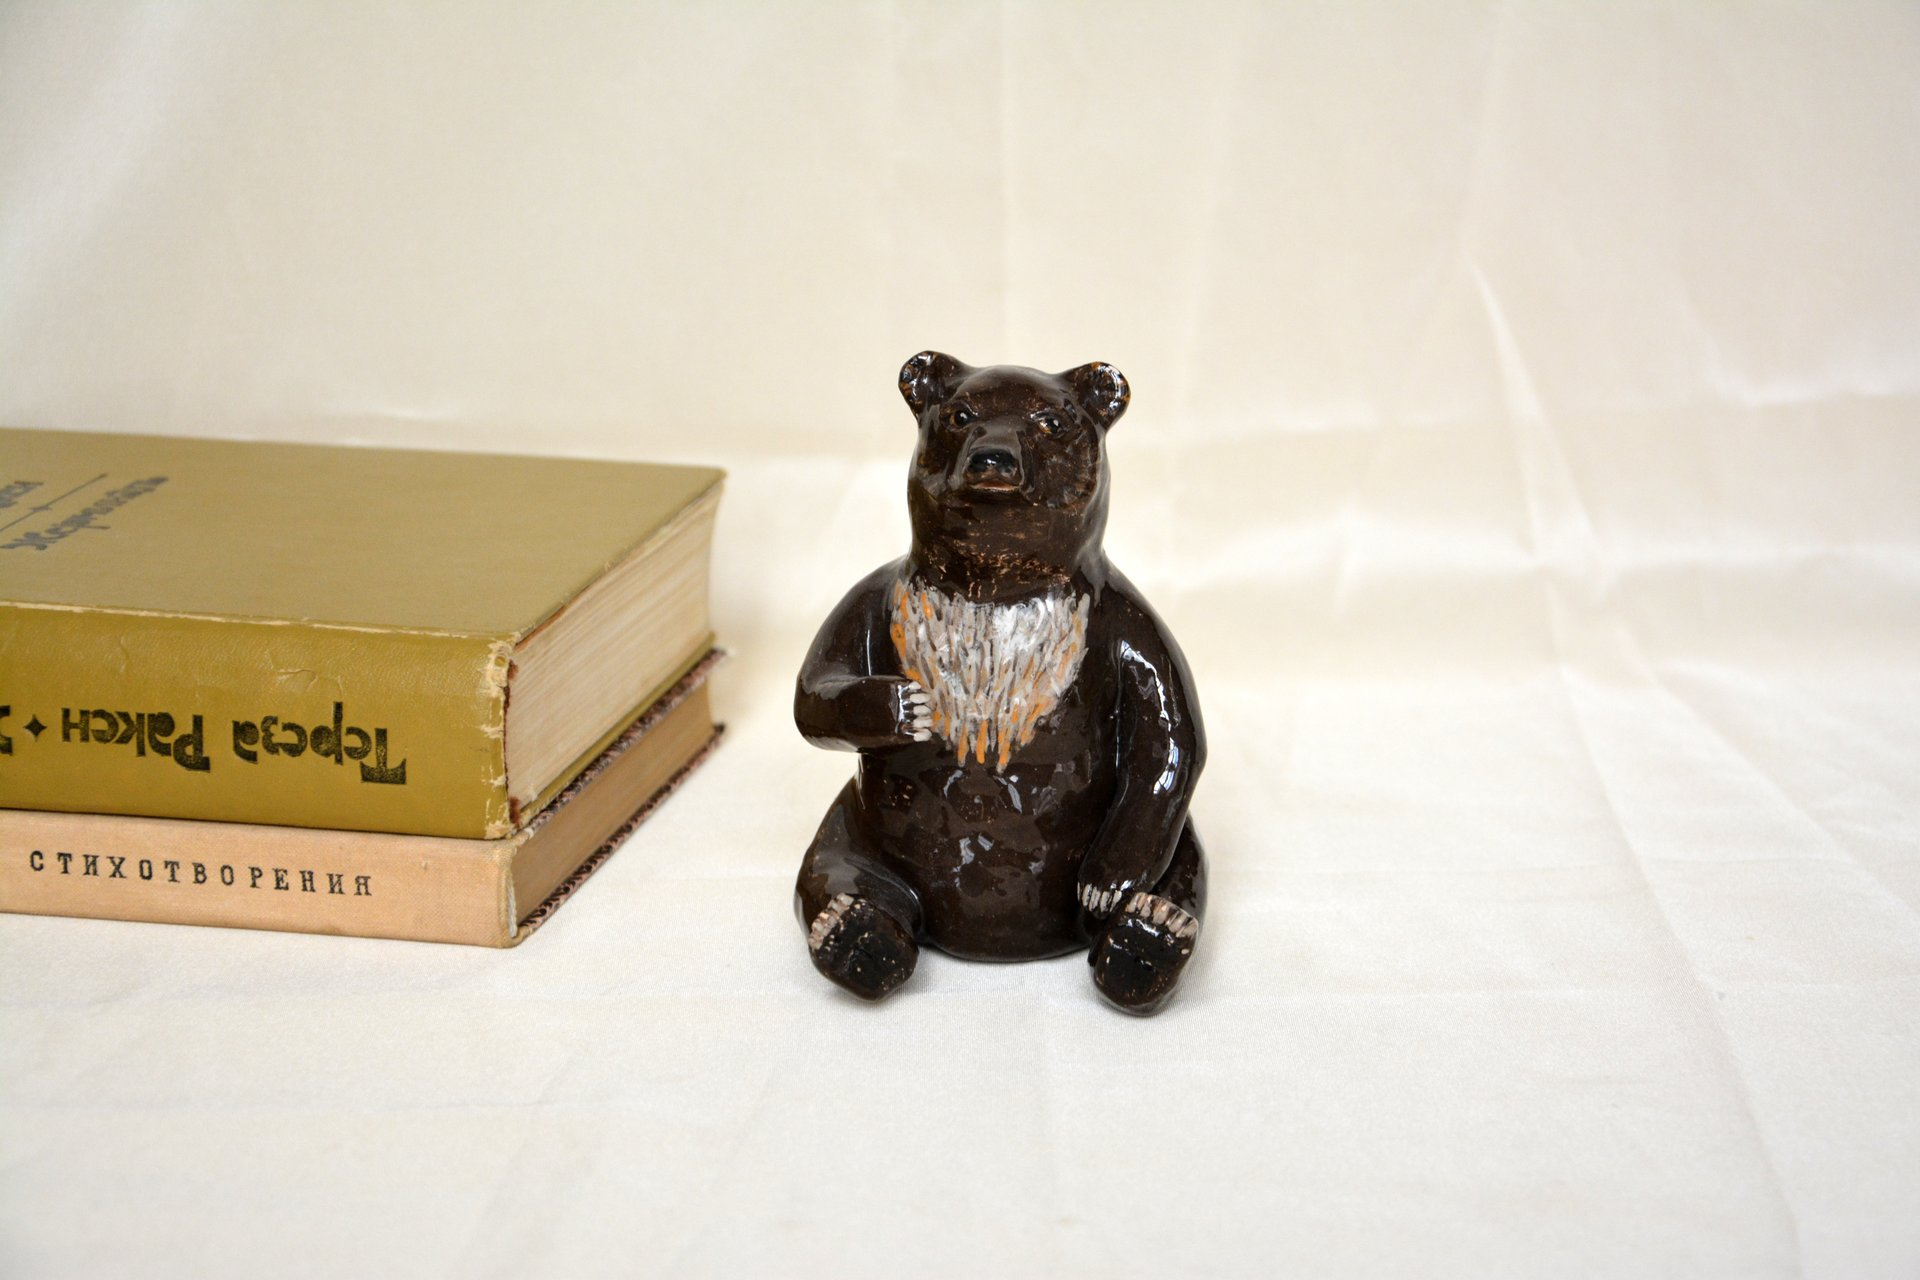 Bear-toed - Animals and birds, height - 11 cm, photo 1 of 2.